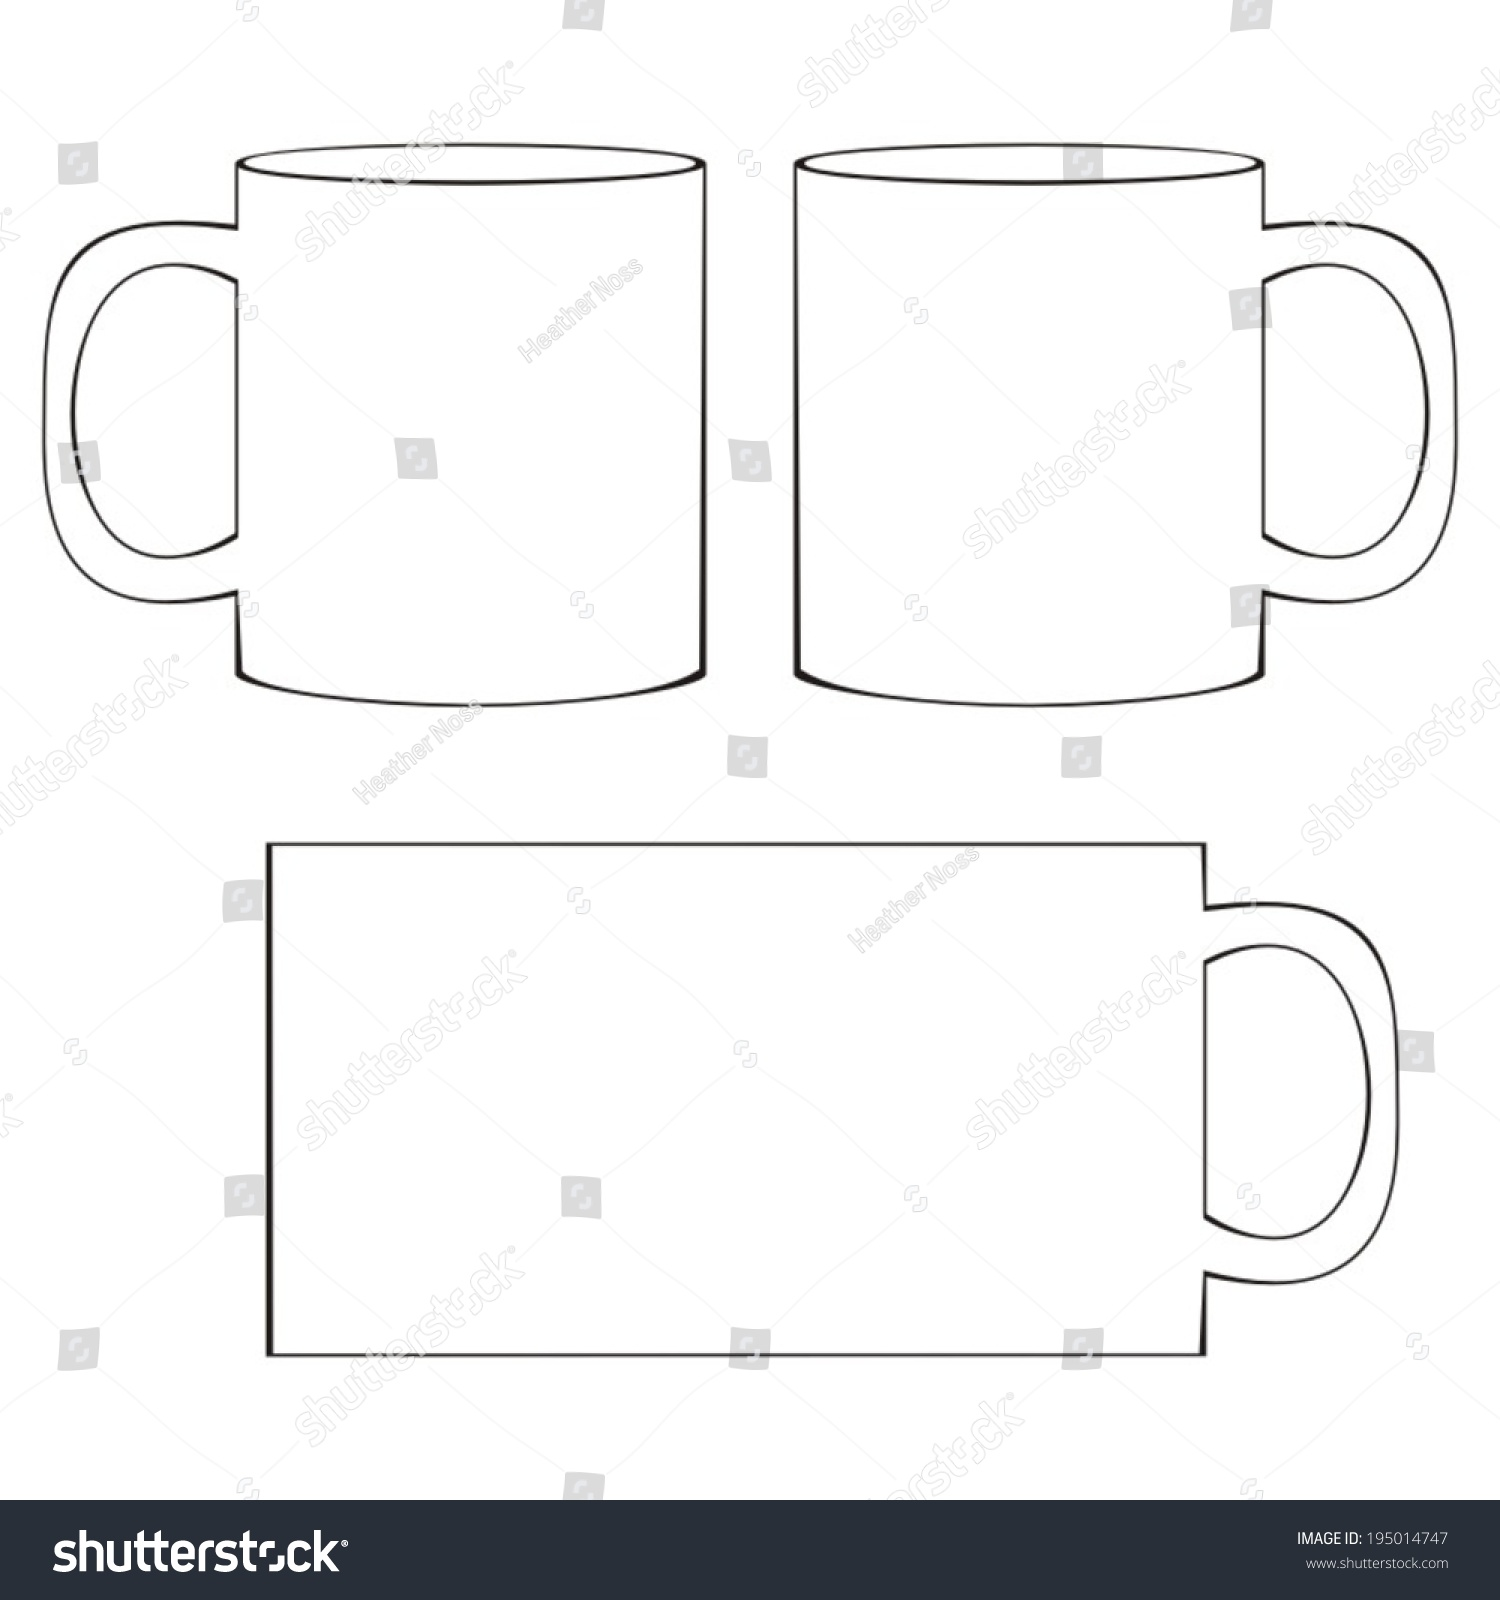 pin teacoffee cup template on pinterest. Black Bedroom Furniture Sets. Home Design Ideas